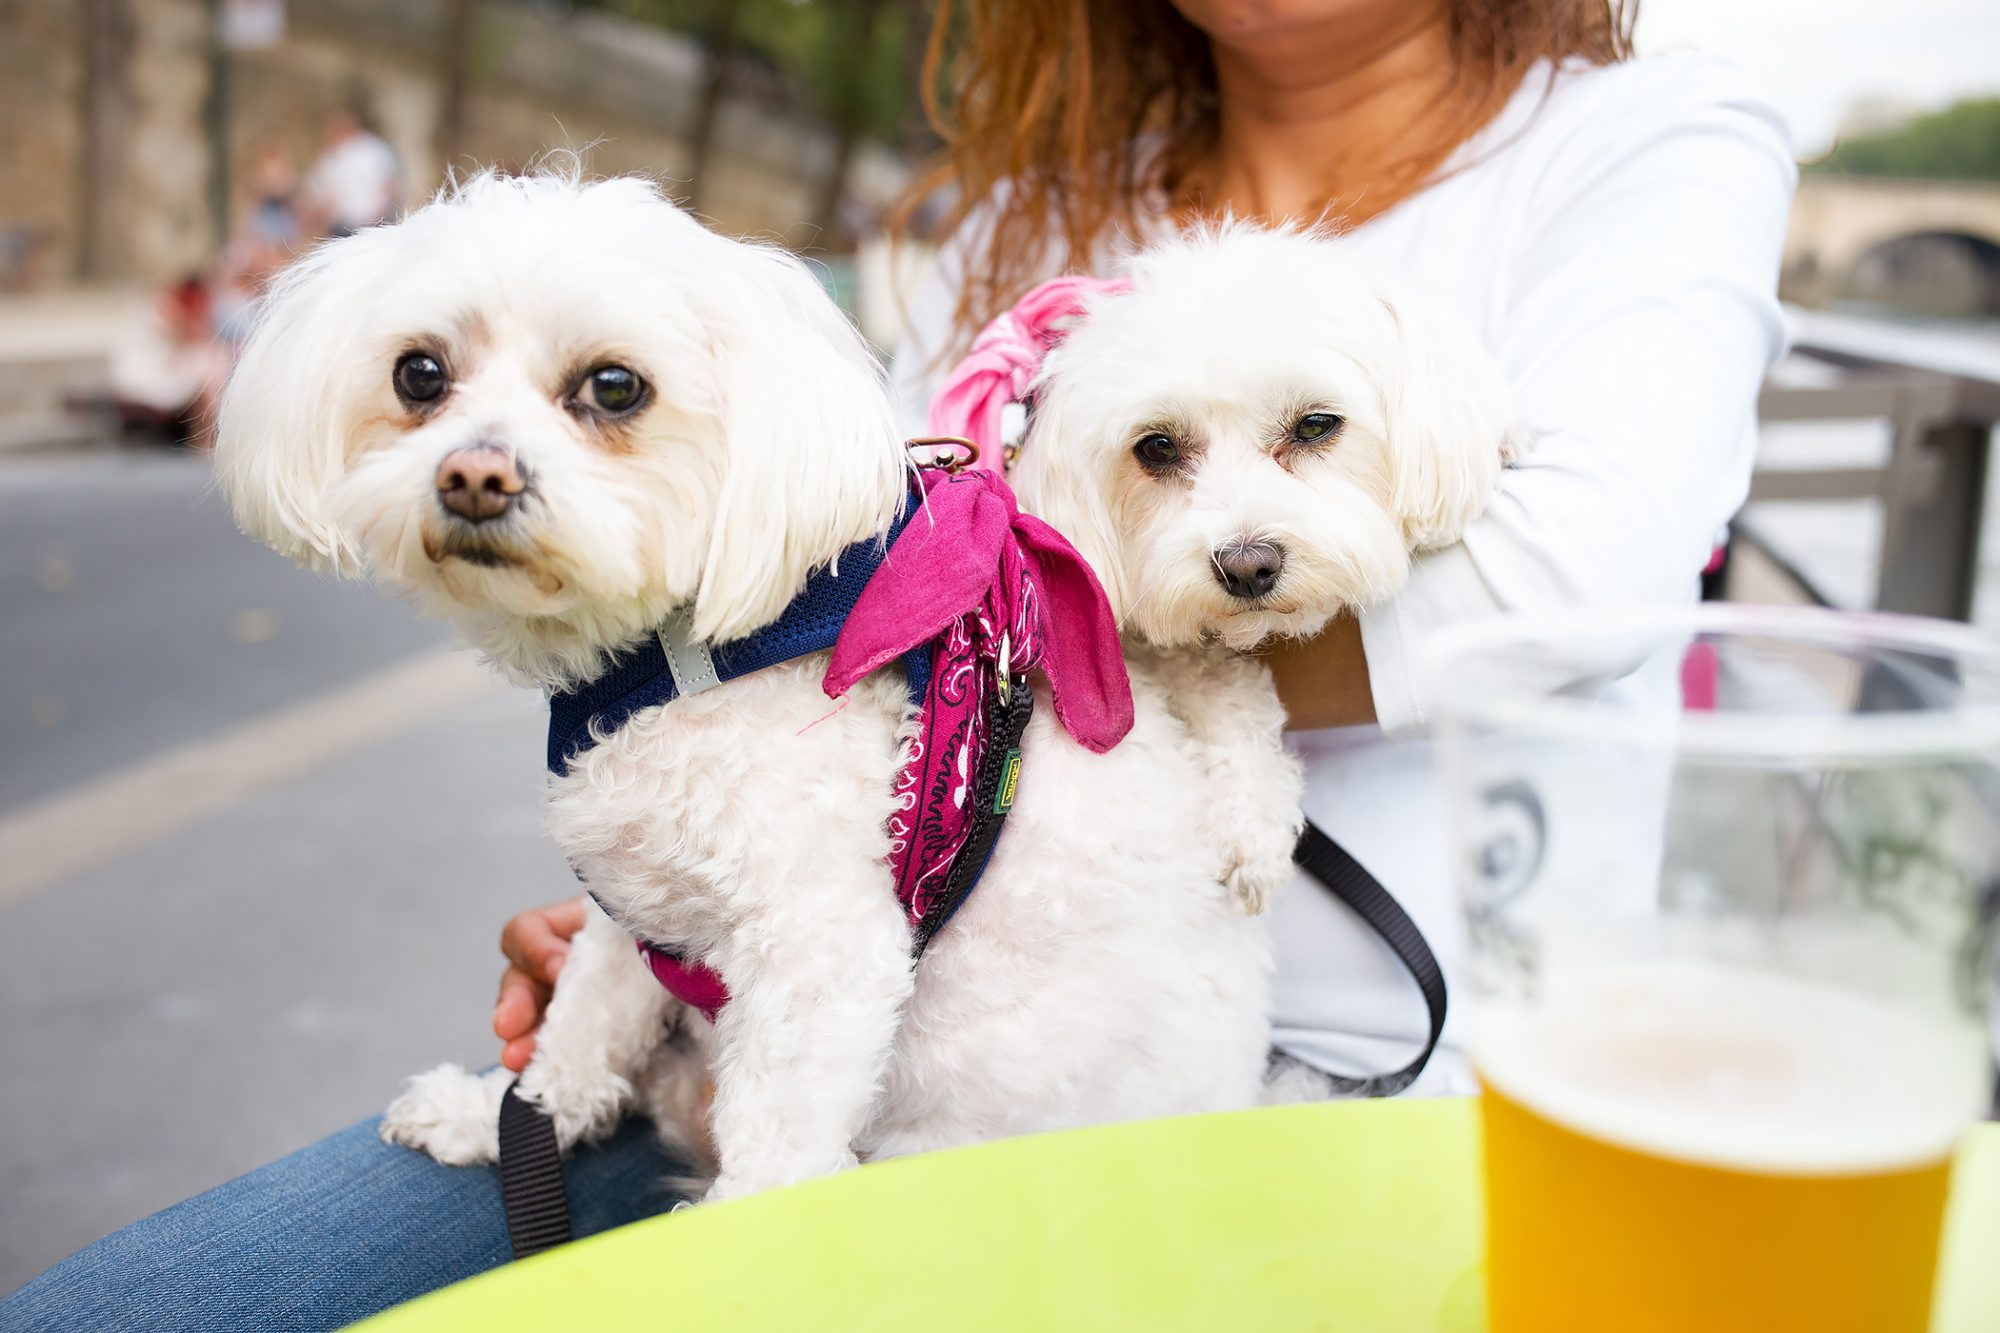 Woman sits with two dogs on her lap at a cafe